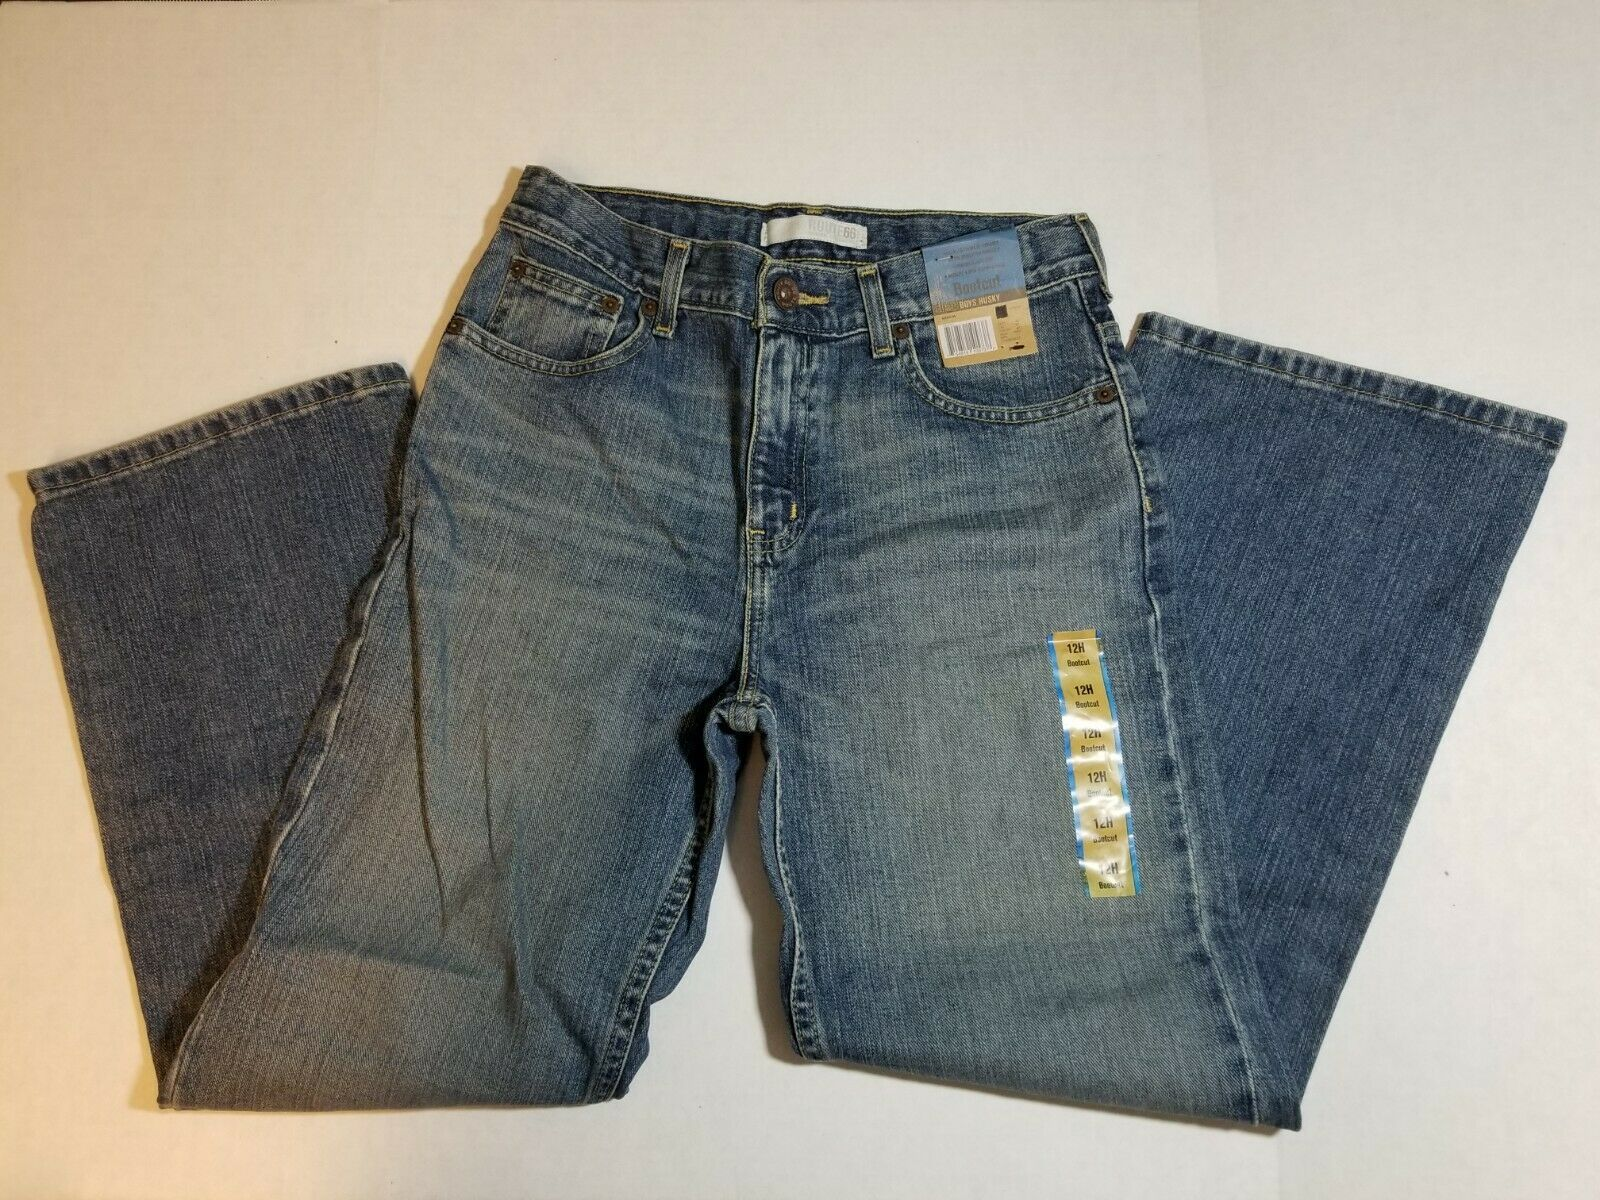 NWT Route 66 Boys Husky Bootcut Jeans Size 12H Medium Wash Pants